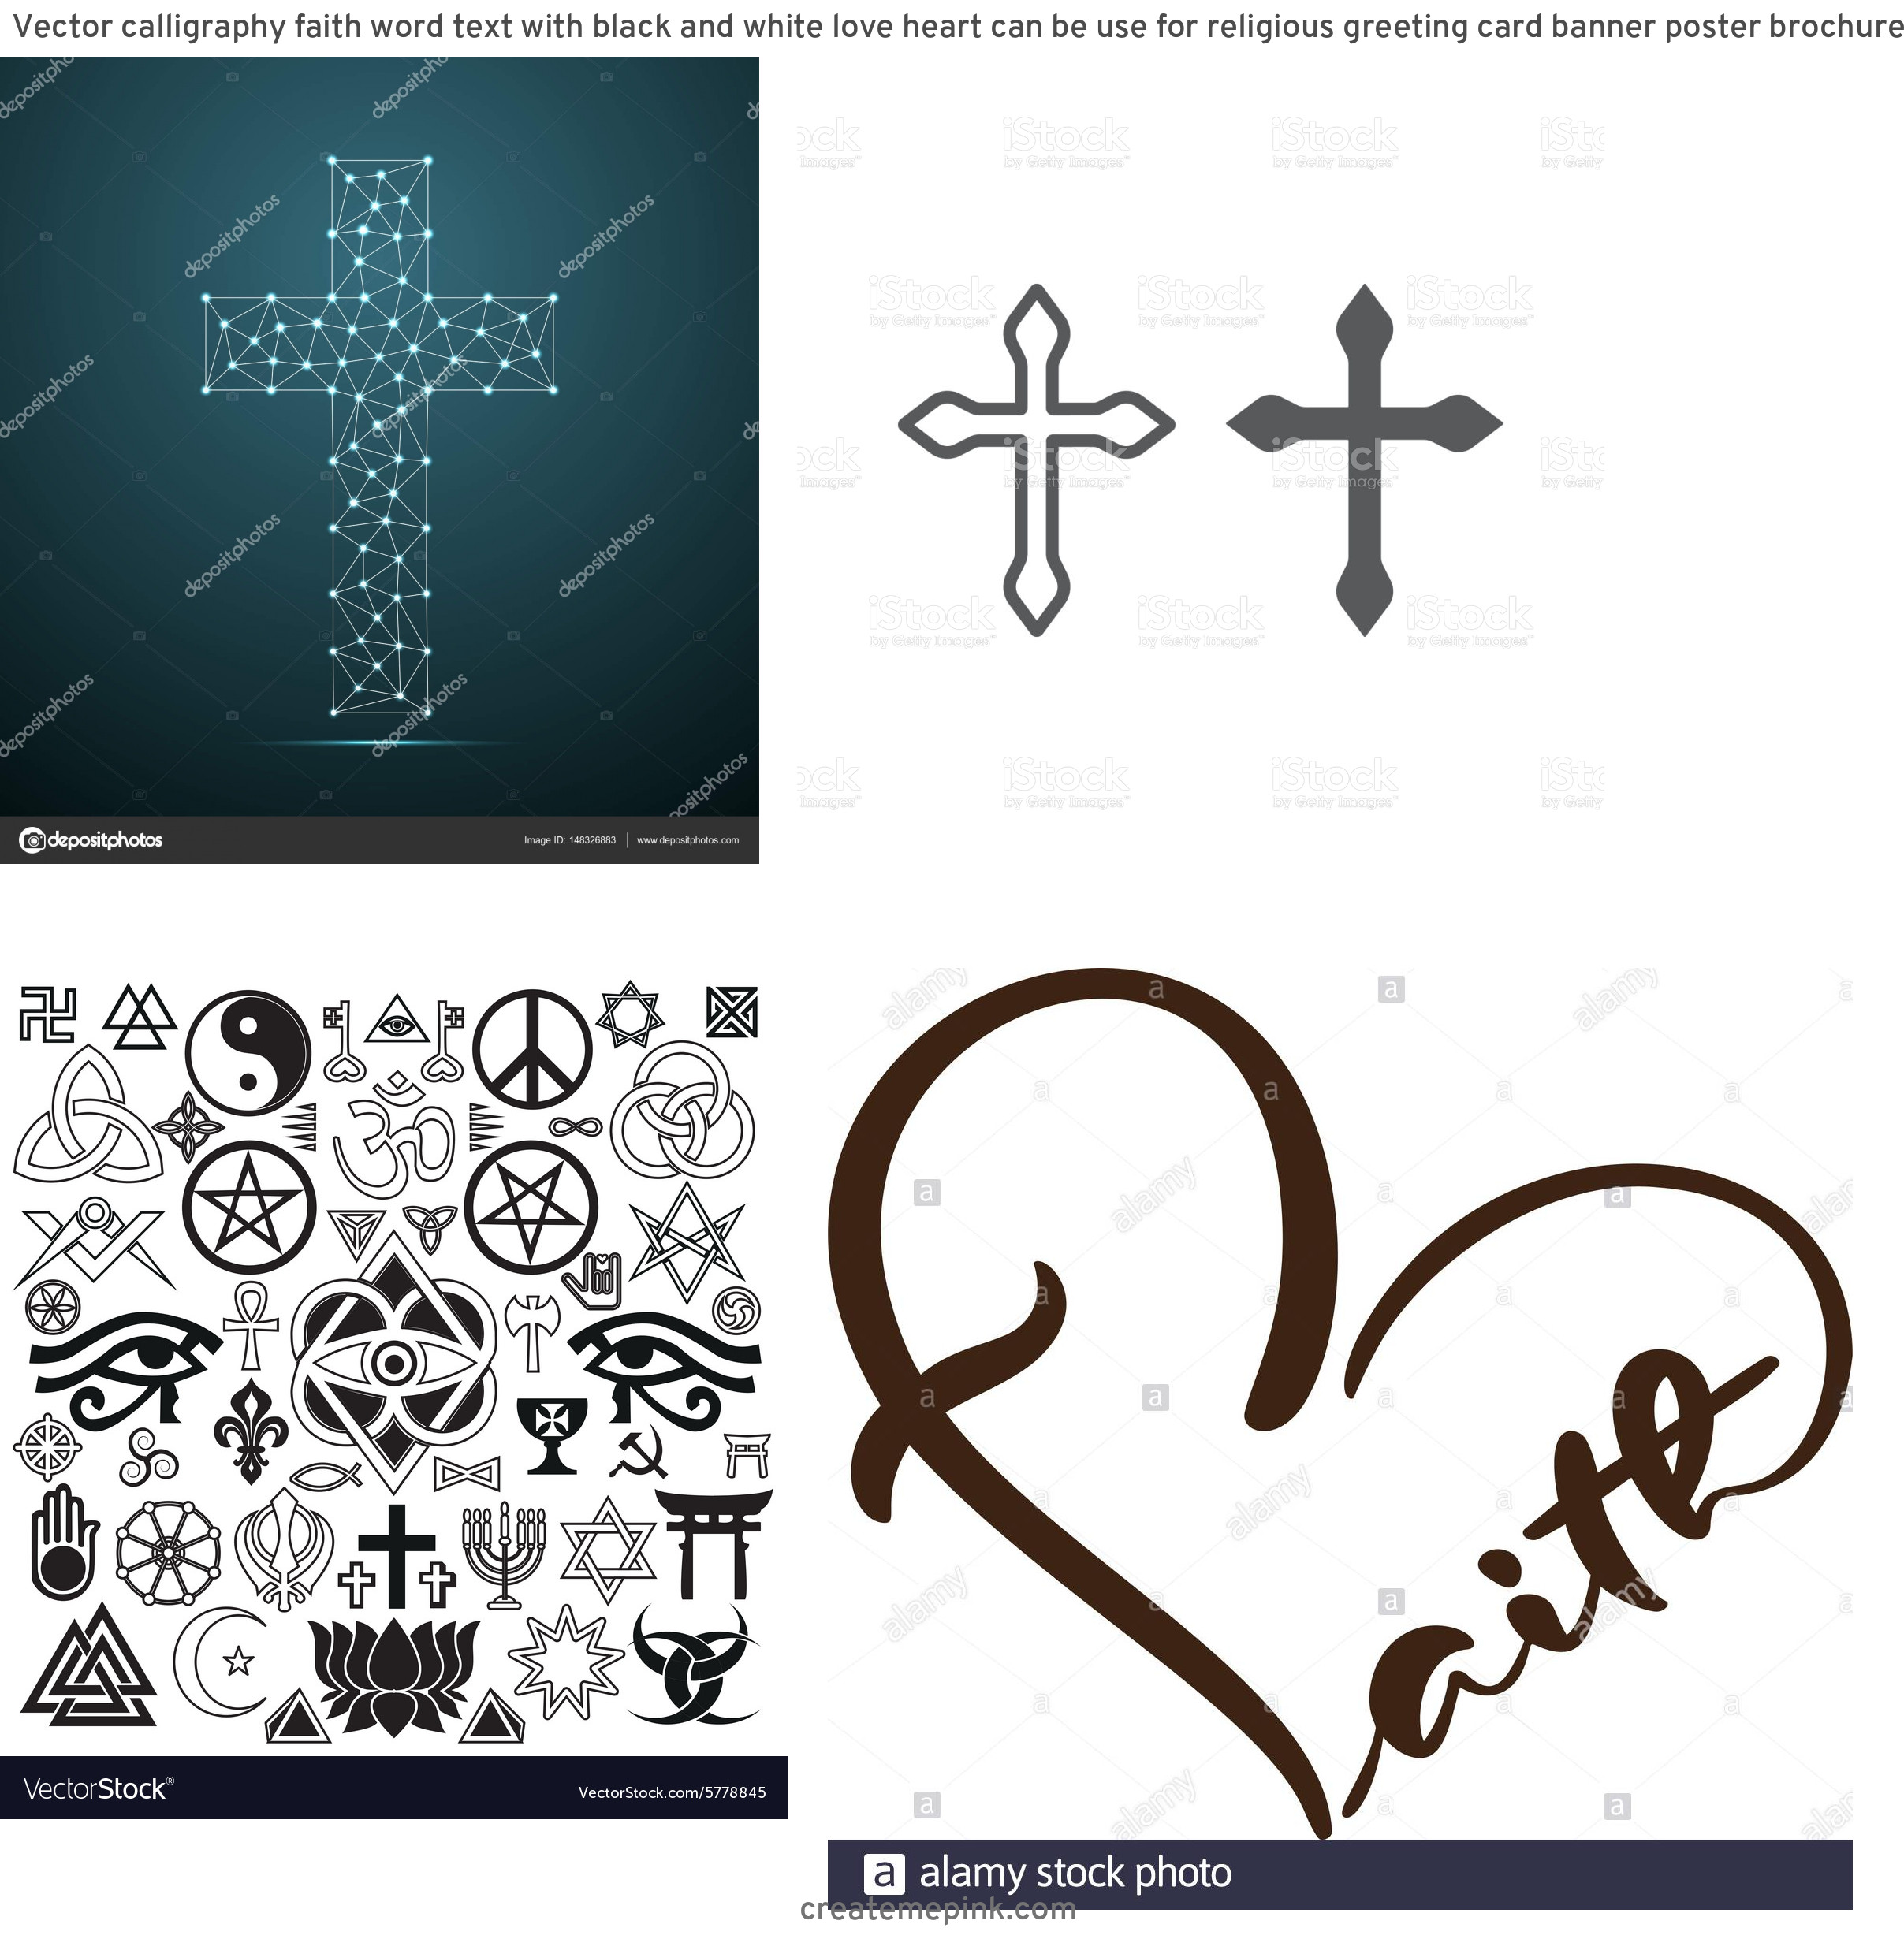 Religous Vectors: Vector Calligraphy Faith Word Text With Black And White Love Heart Can Be Use For Religious Greeting Card Banner Poster Brochure Or Typography Image